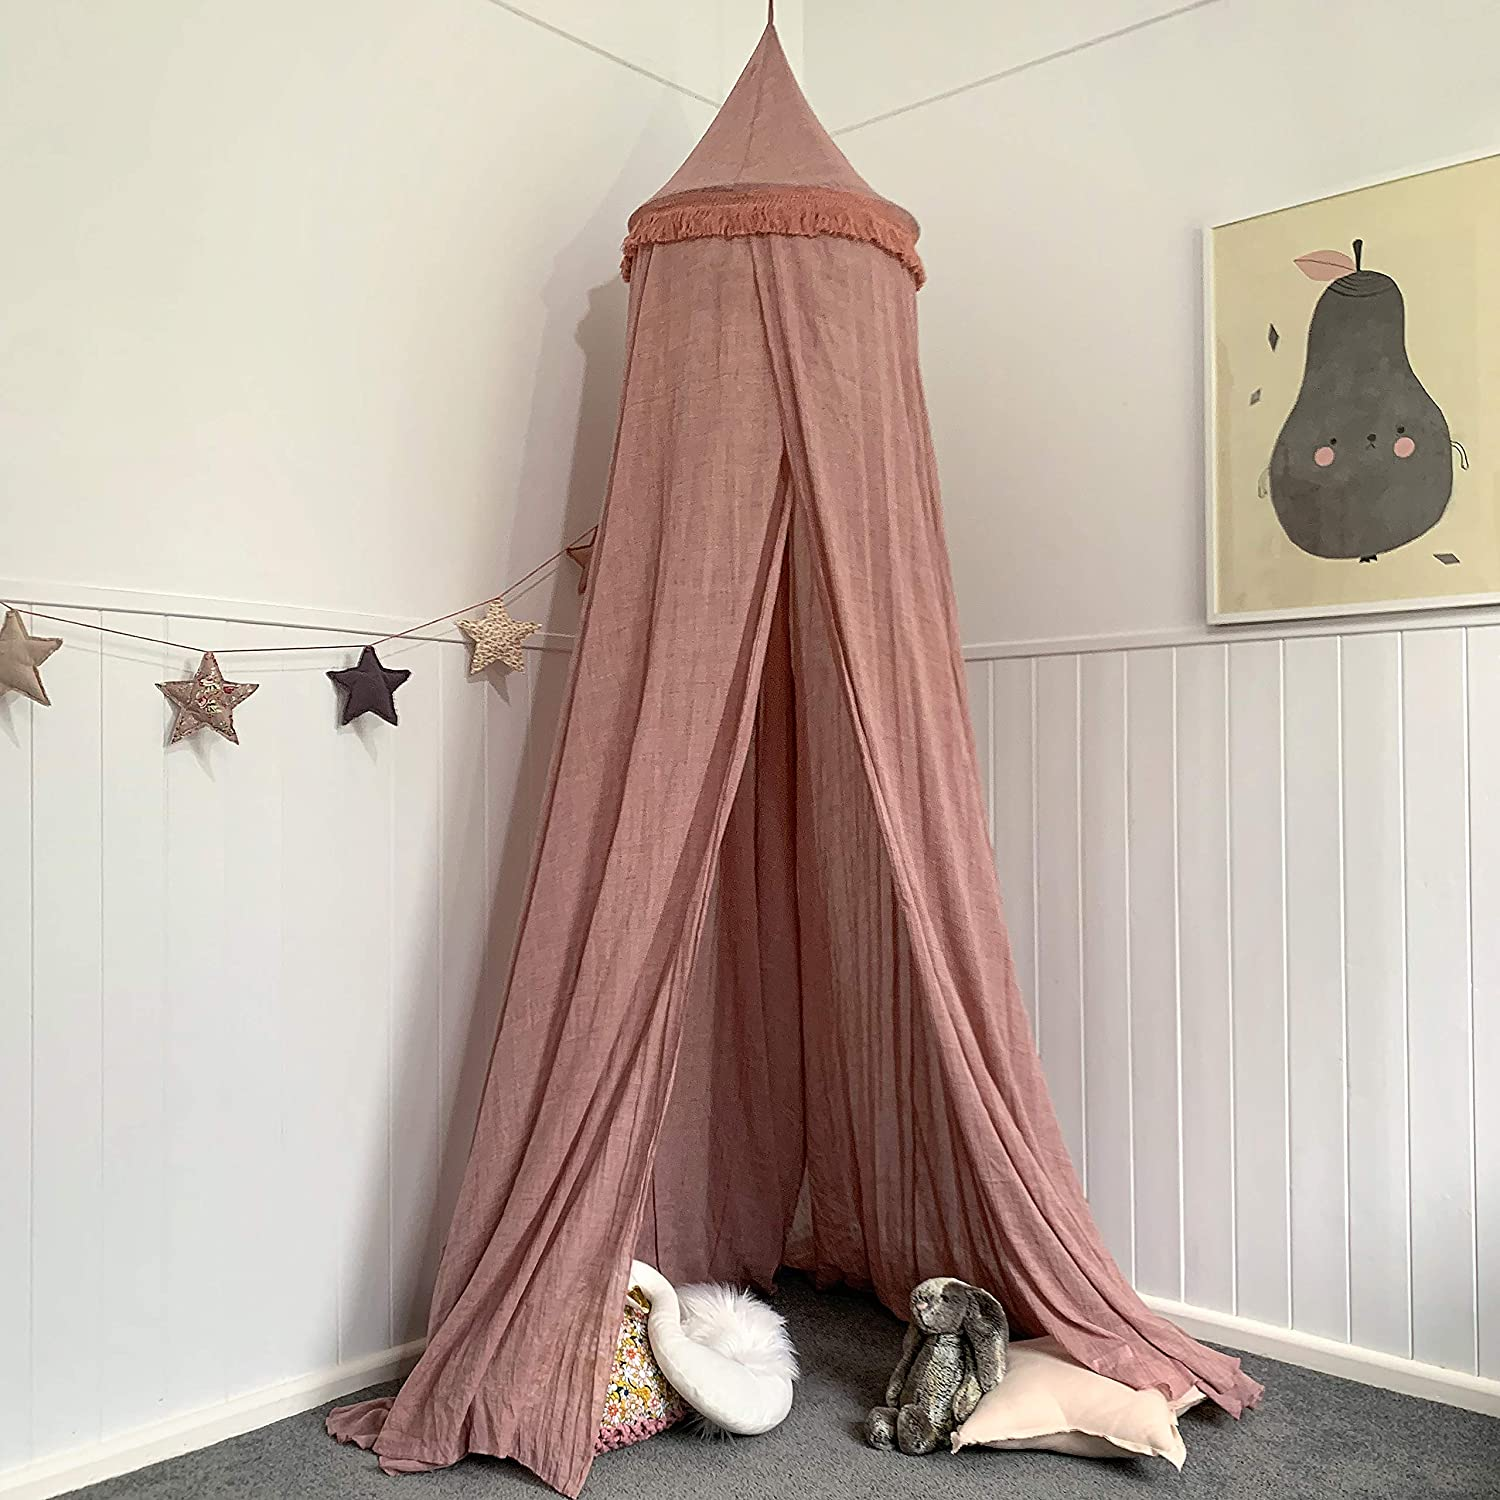 for Child Zeke and Zoey Soft Hanging Dirty Dusty Pink Bed Canopy for Girls Bed or Boys Nursery Decoration Play Hideaway Tent for Kids Rooms or Cots Reading Slightly Sheer Drapes